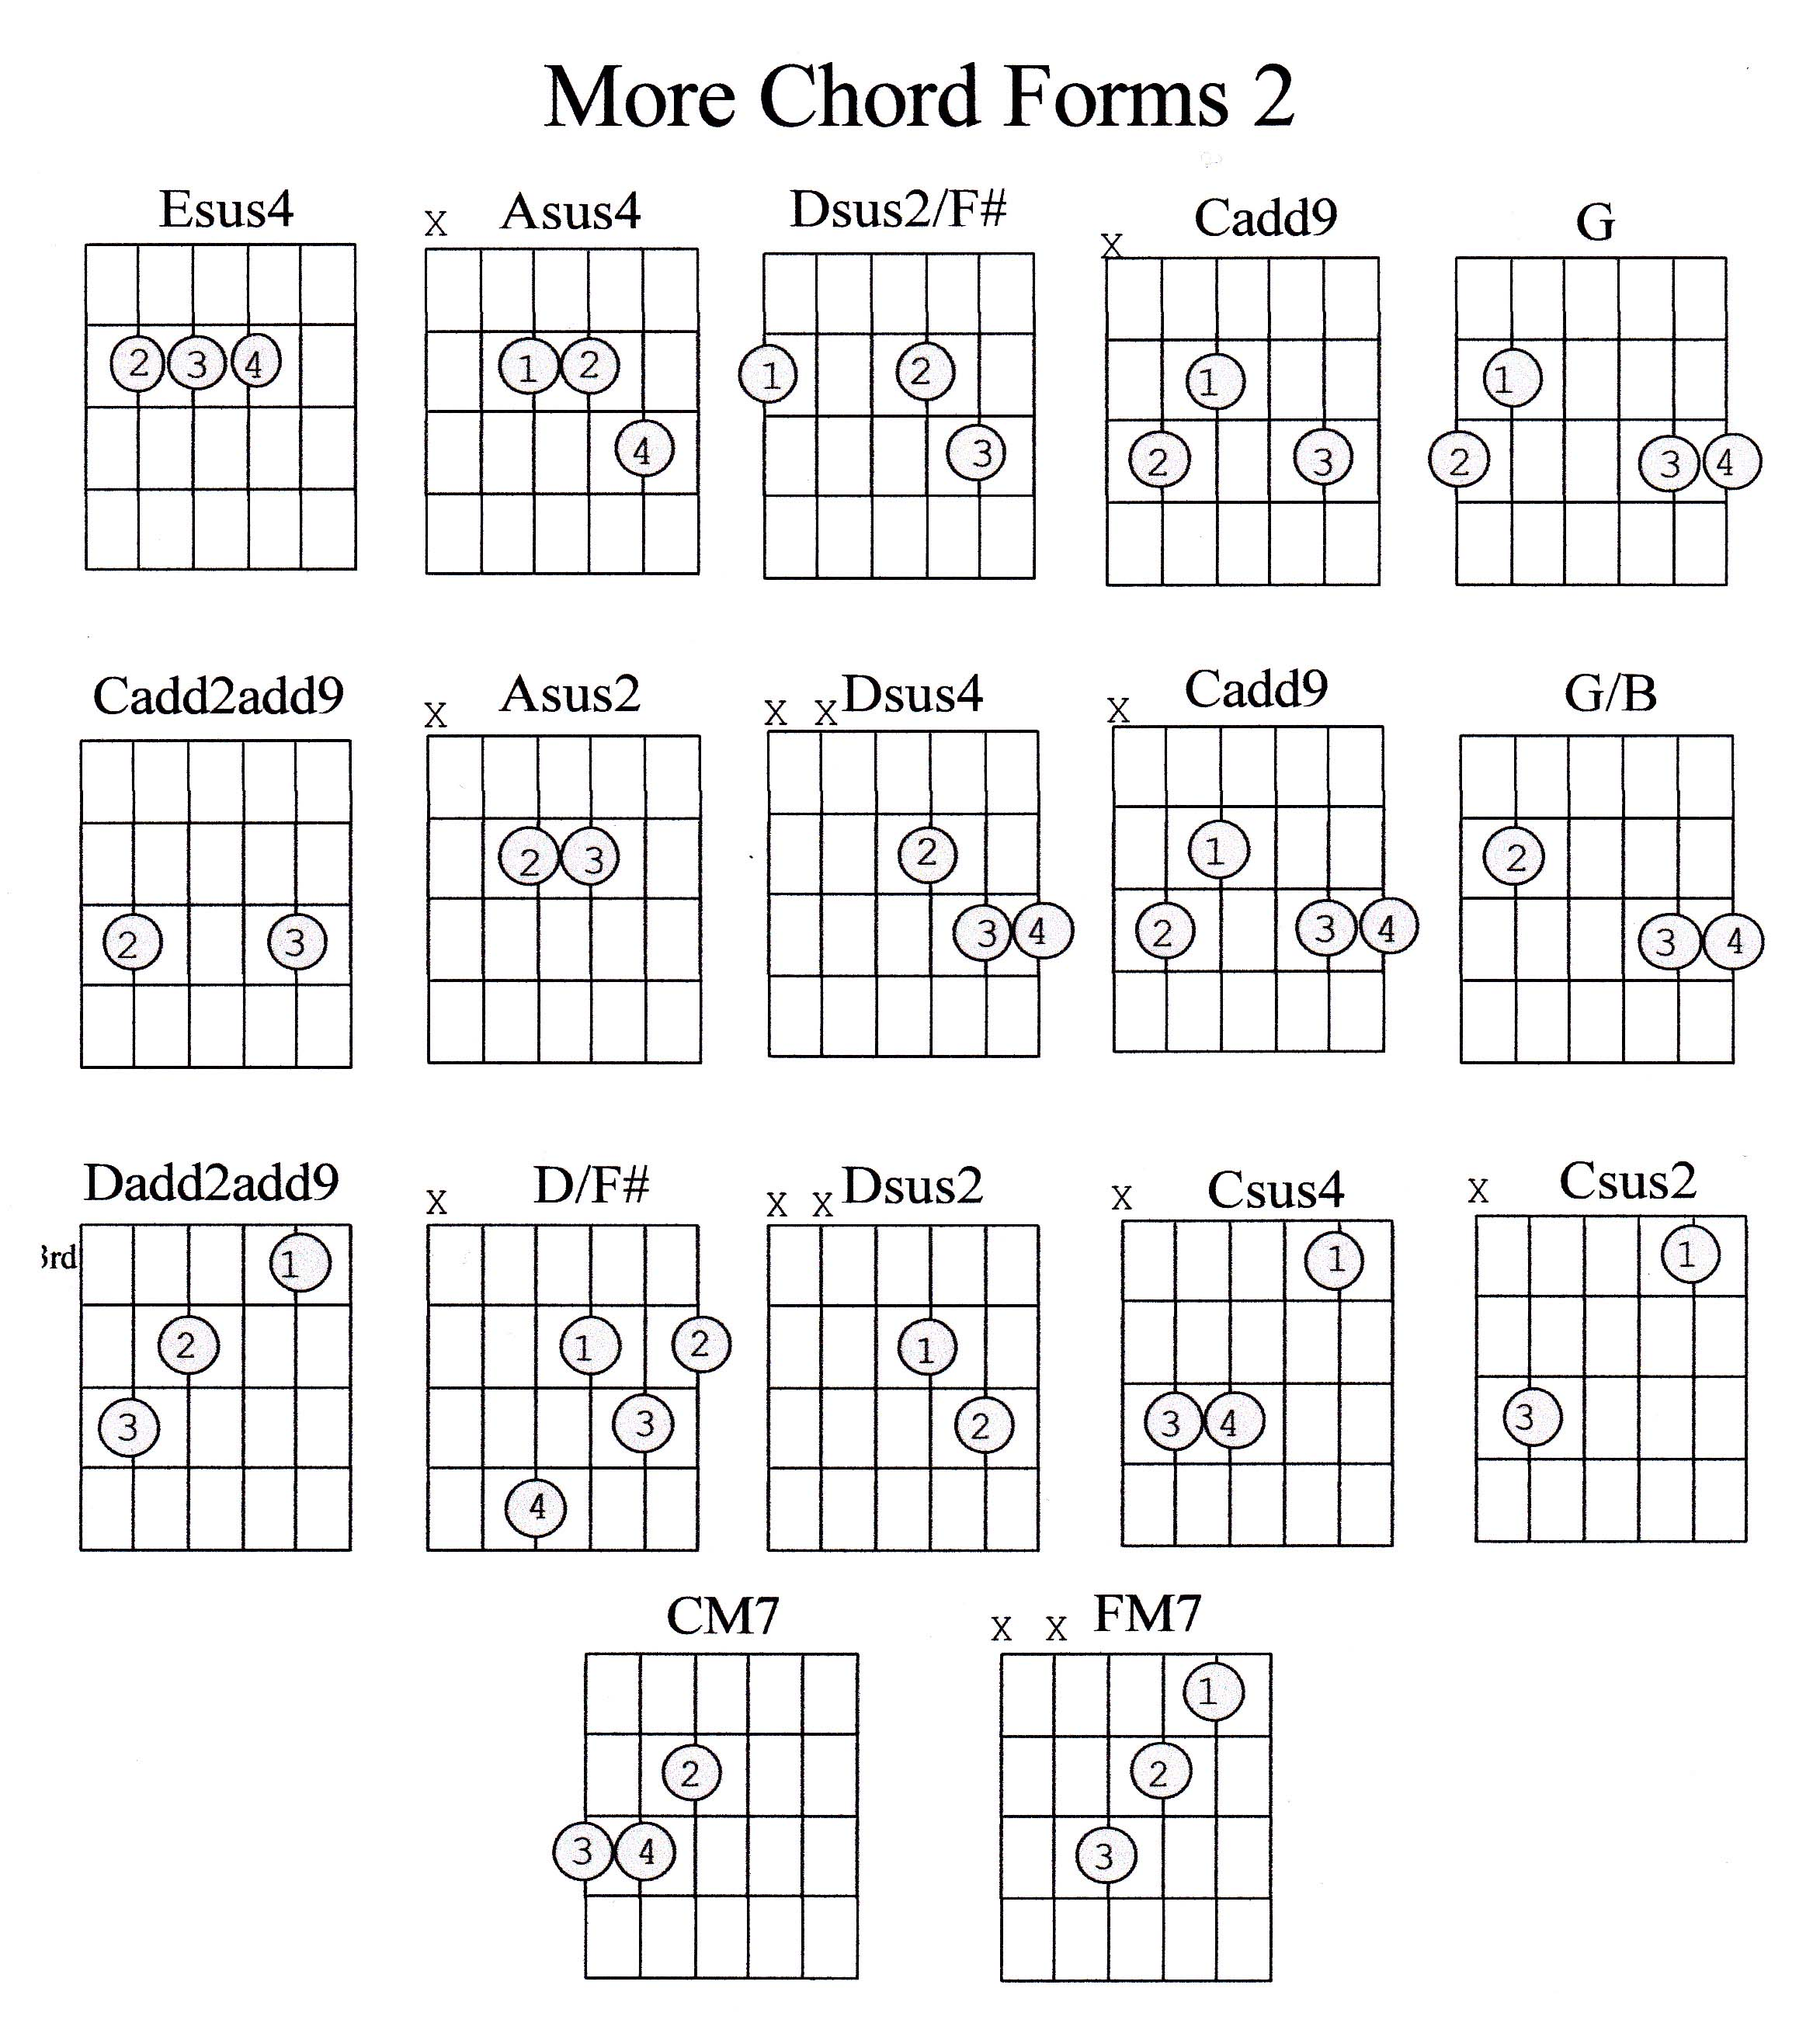 Guitar chord guide advanced marcus curtis music if we look at the above examples we see some new chord forms most of them have new names these chords are very popular among guitar players hexwebz Choice Image